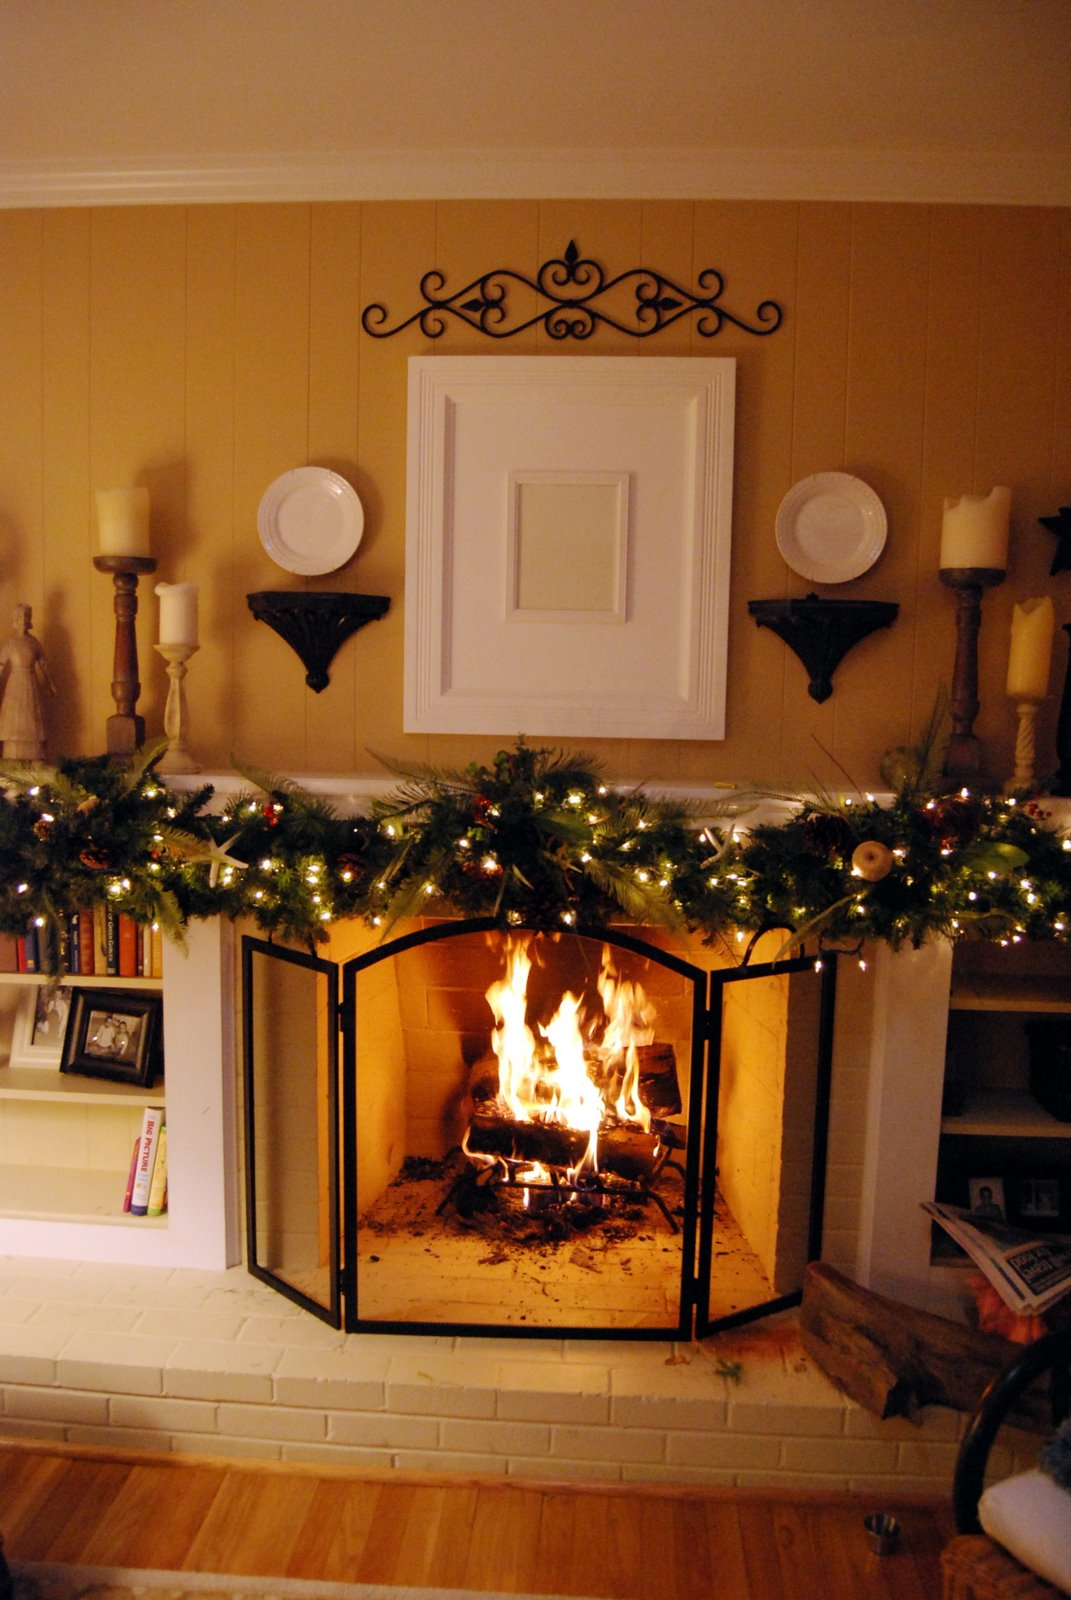 a fireplace with garland on mantel